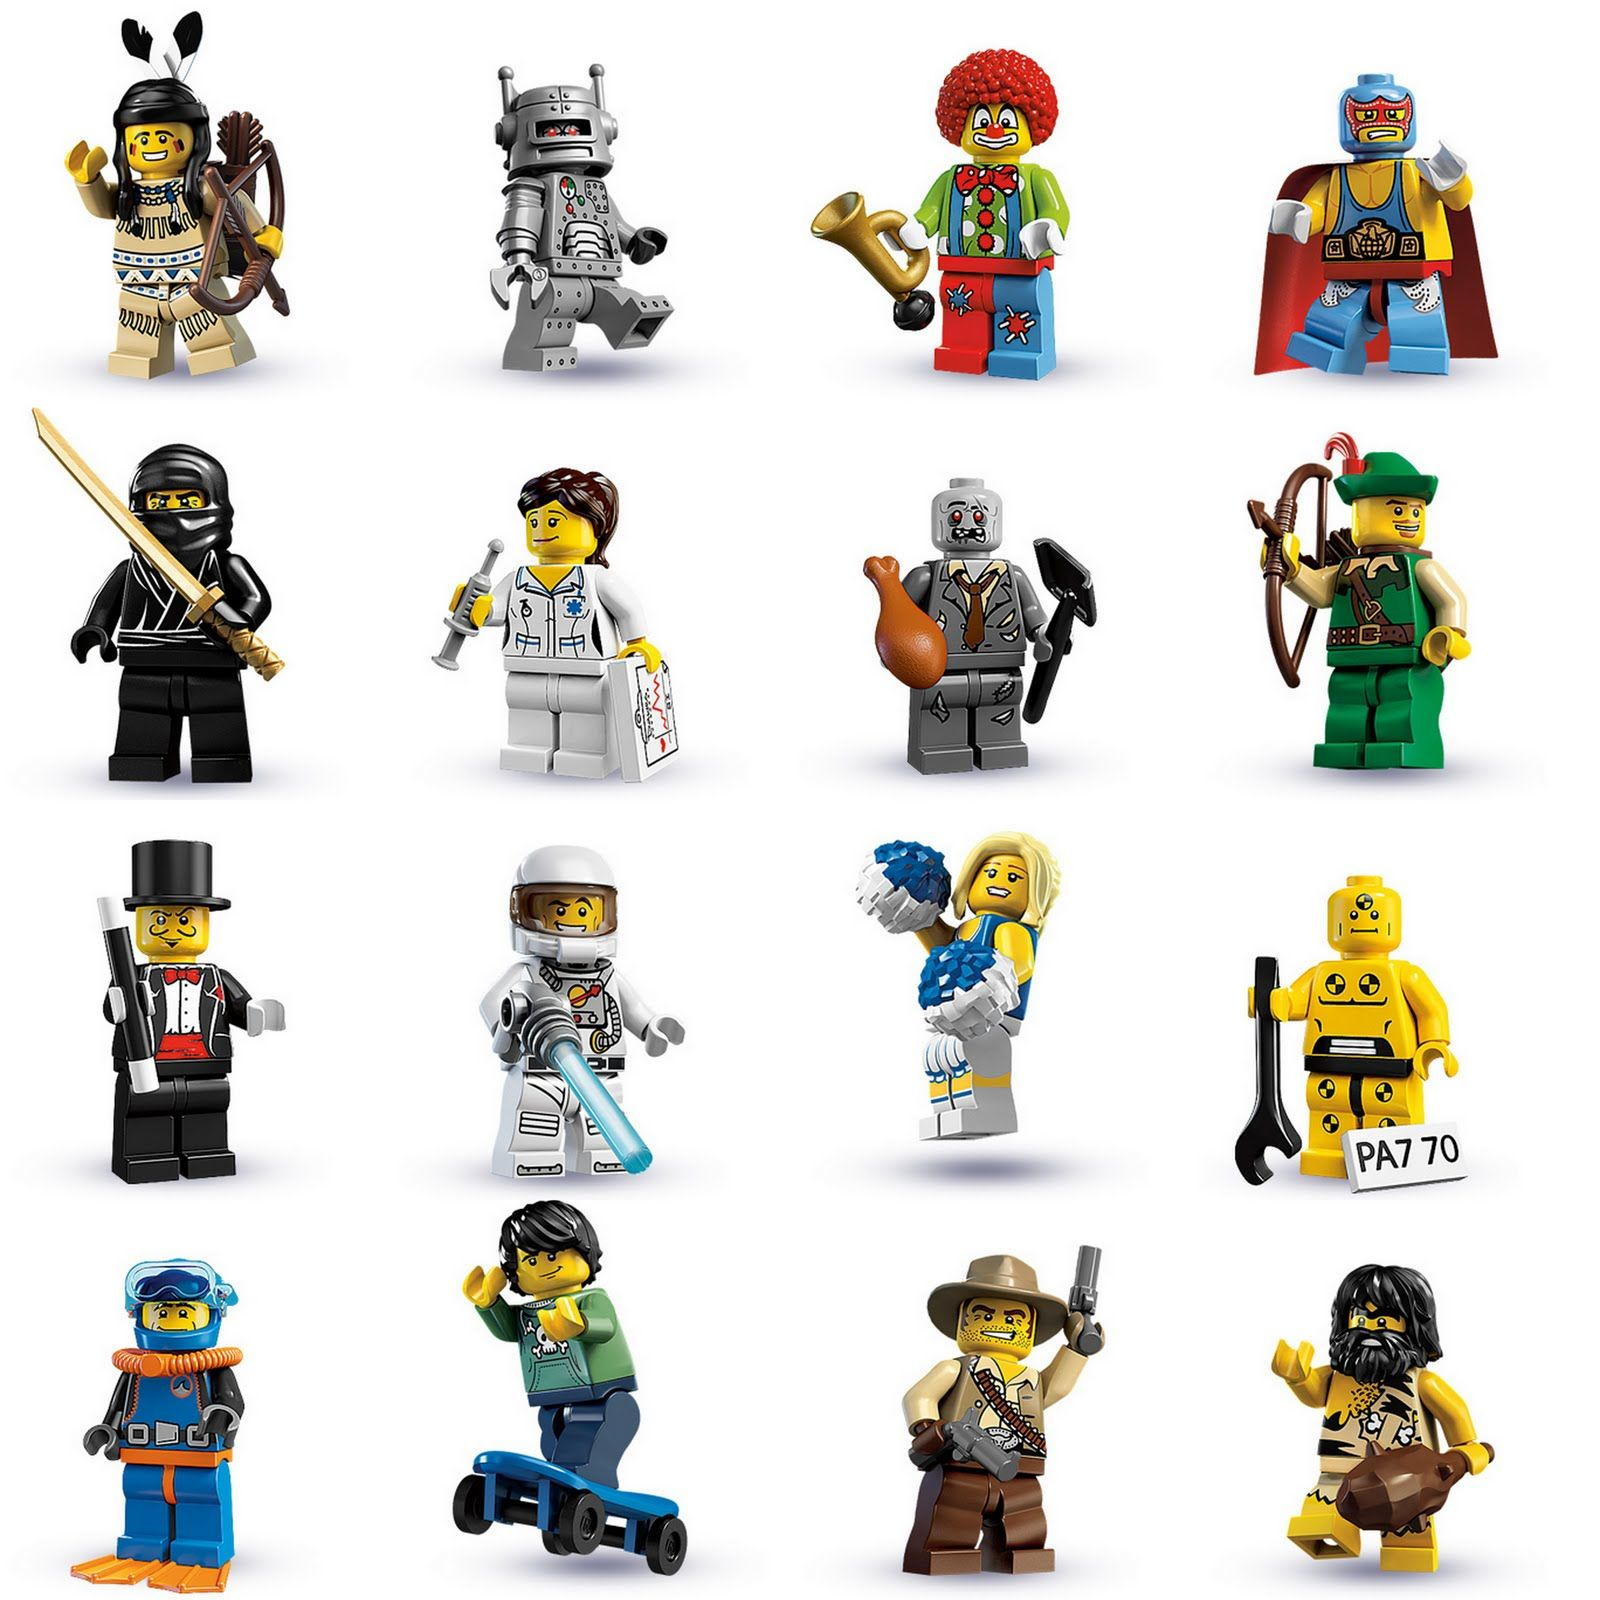 lego minifigures series 1 google keres s lego i pinterest lego legos and lego figures. Black Bedroom Furniture Sets. Home Design Ideas